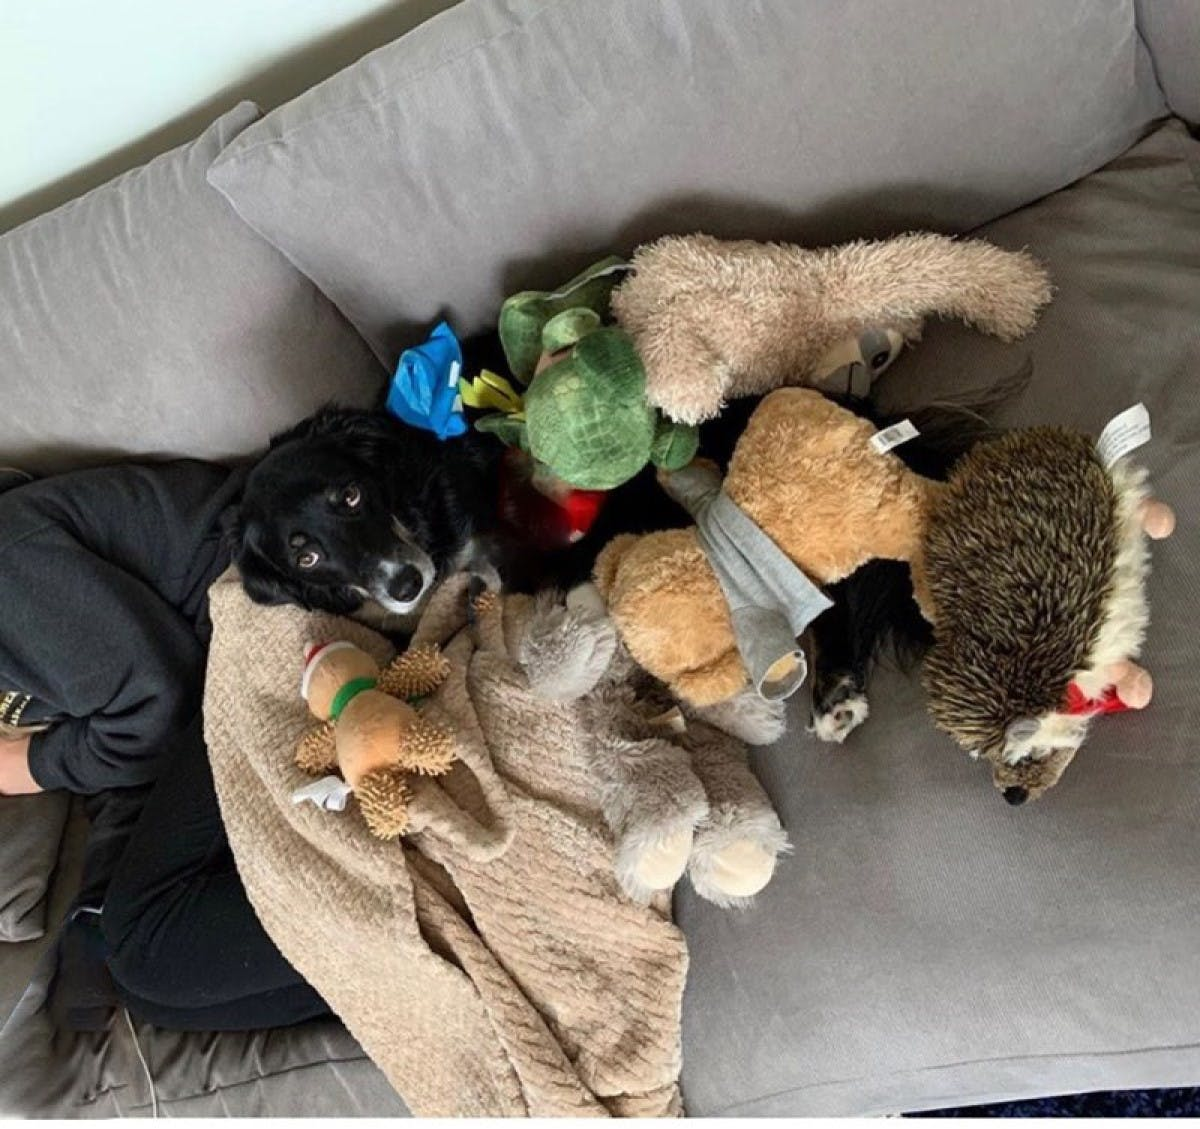 Cloe the dog on the couch surrounded by toys